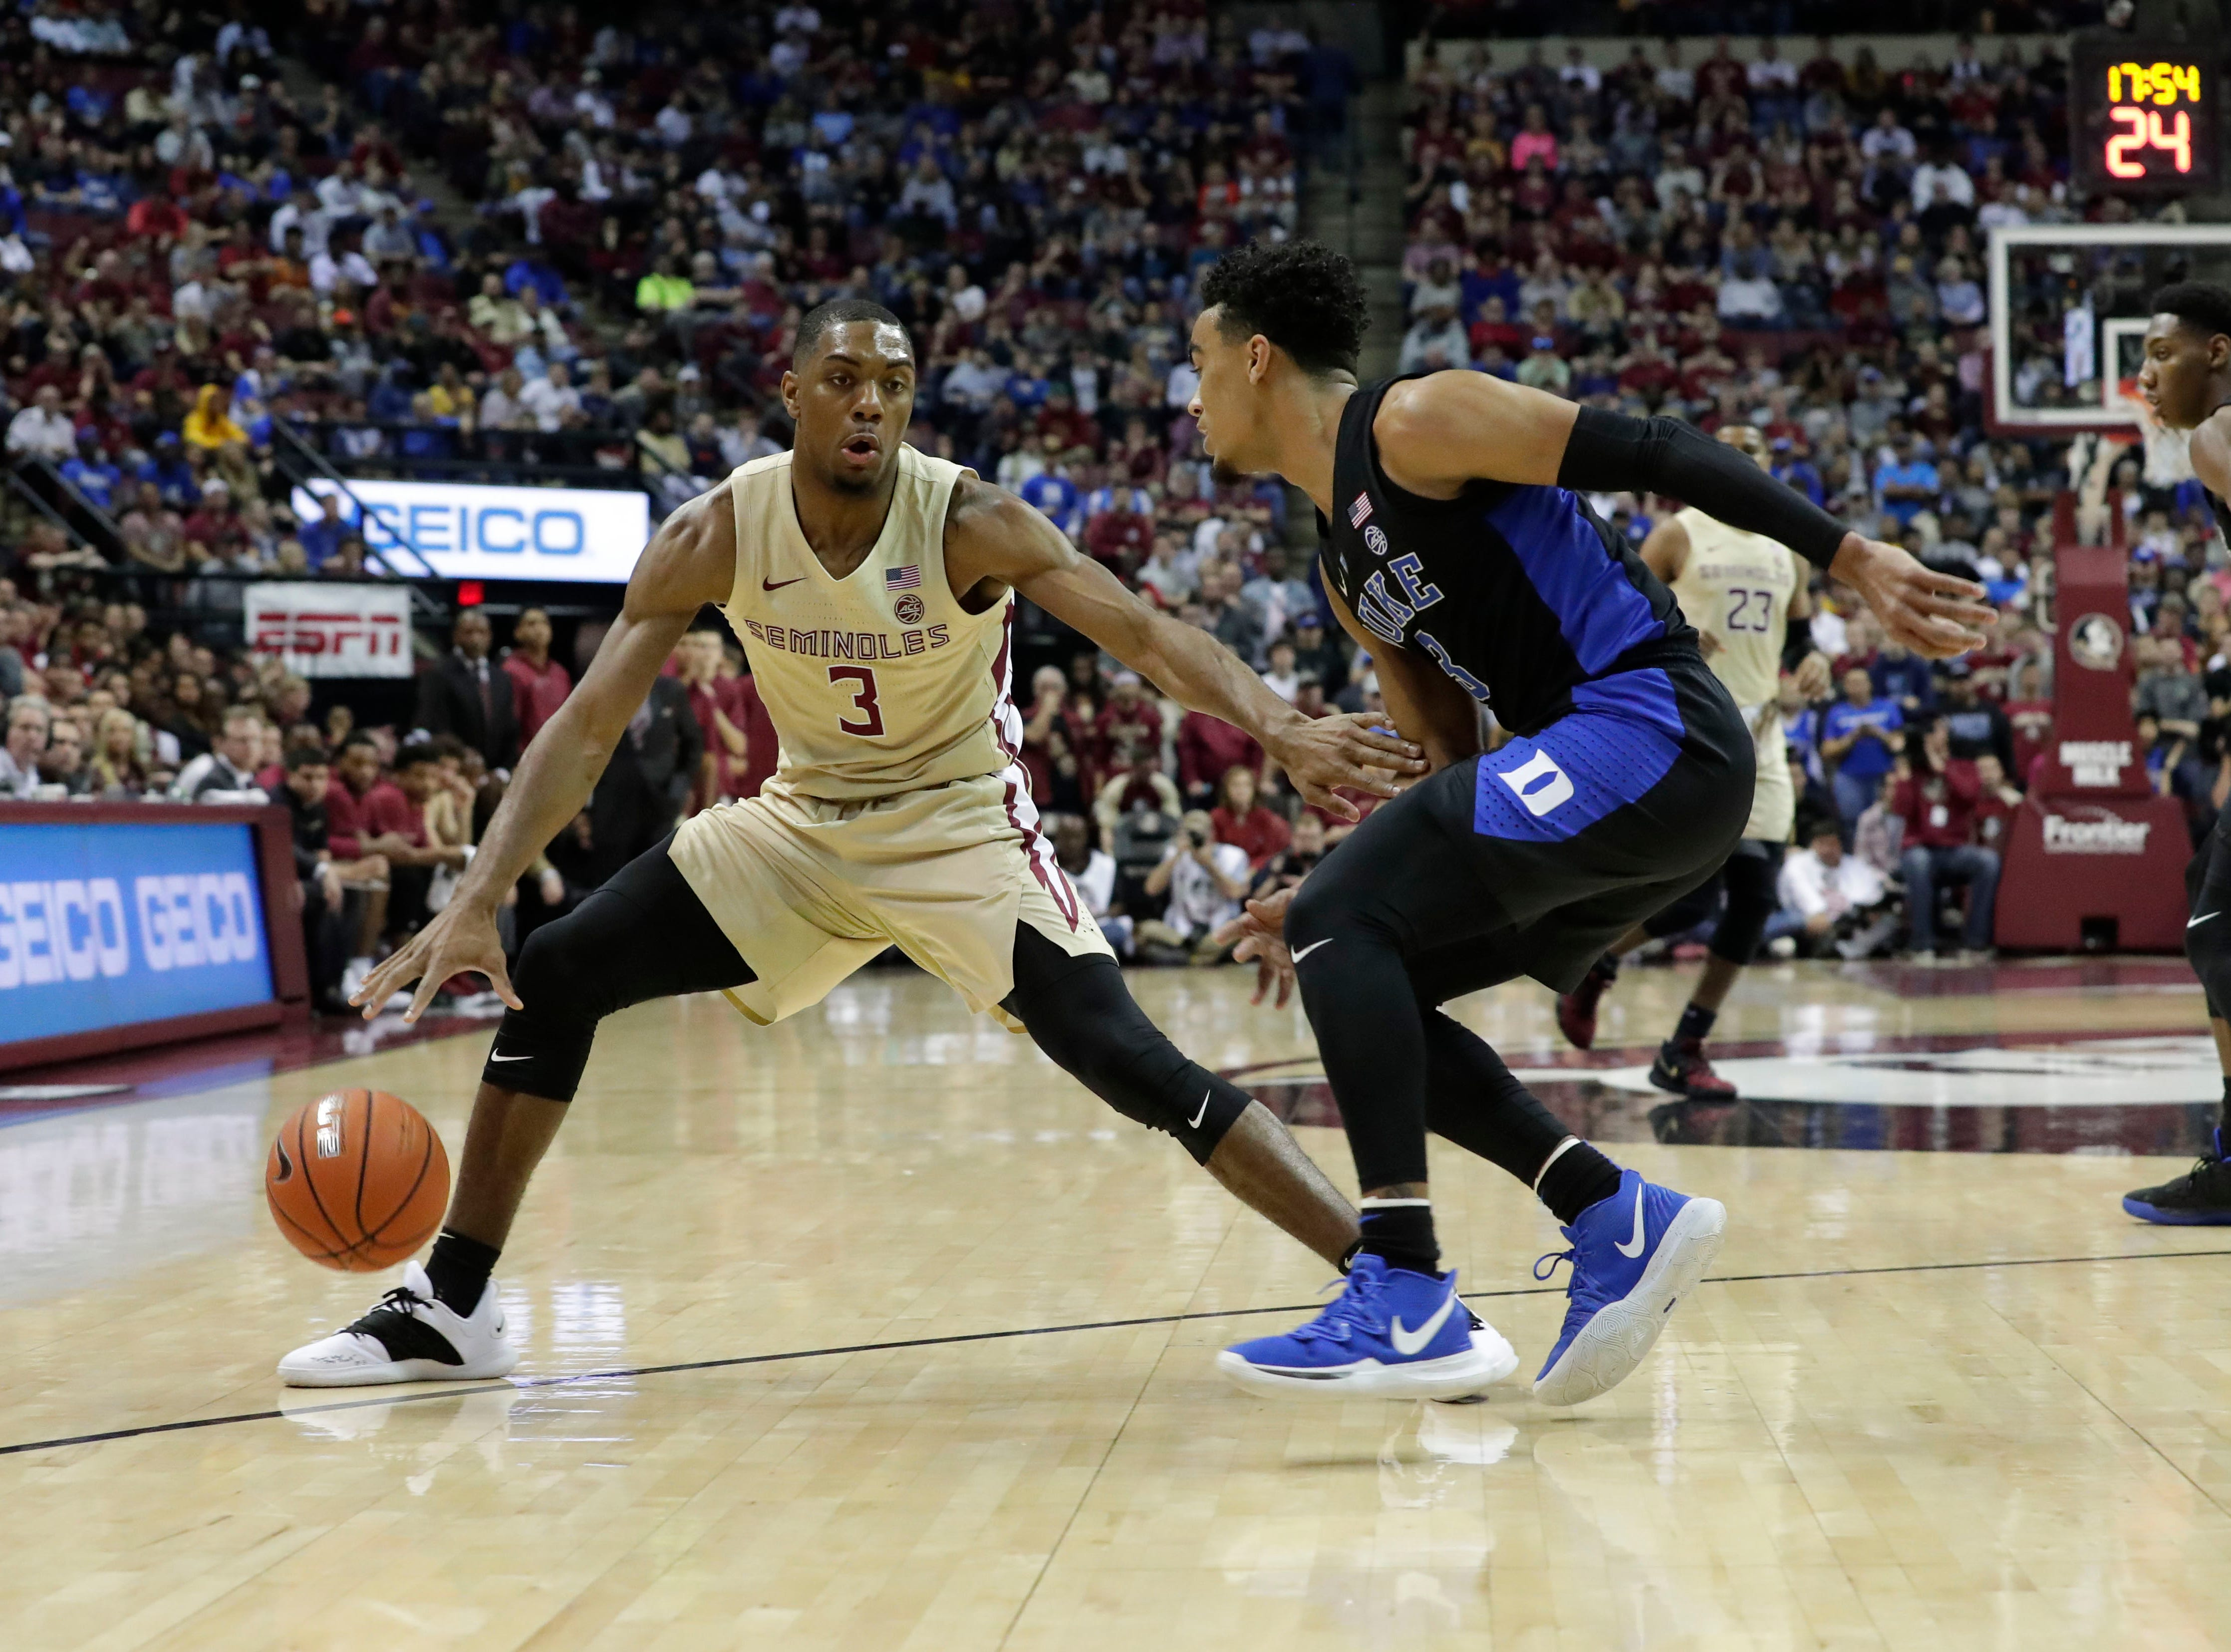 Florida State Seminoles guard Trent Forrest (3) tries to fight off his defender as he drives the ball to the hoop. Ranked 13 in the ACC, the Florida State Seminoles host the number 1 team, the Duke Blue Devils, at the Tucker Civic Center, Saturday, Jan. 12, 2019.